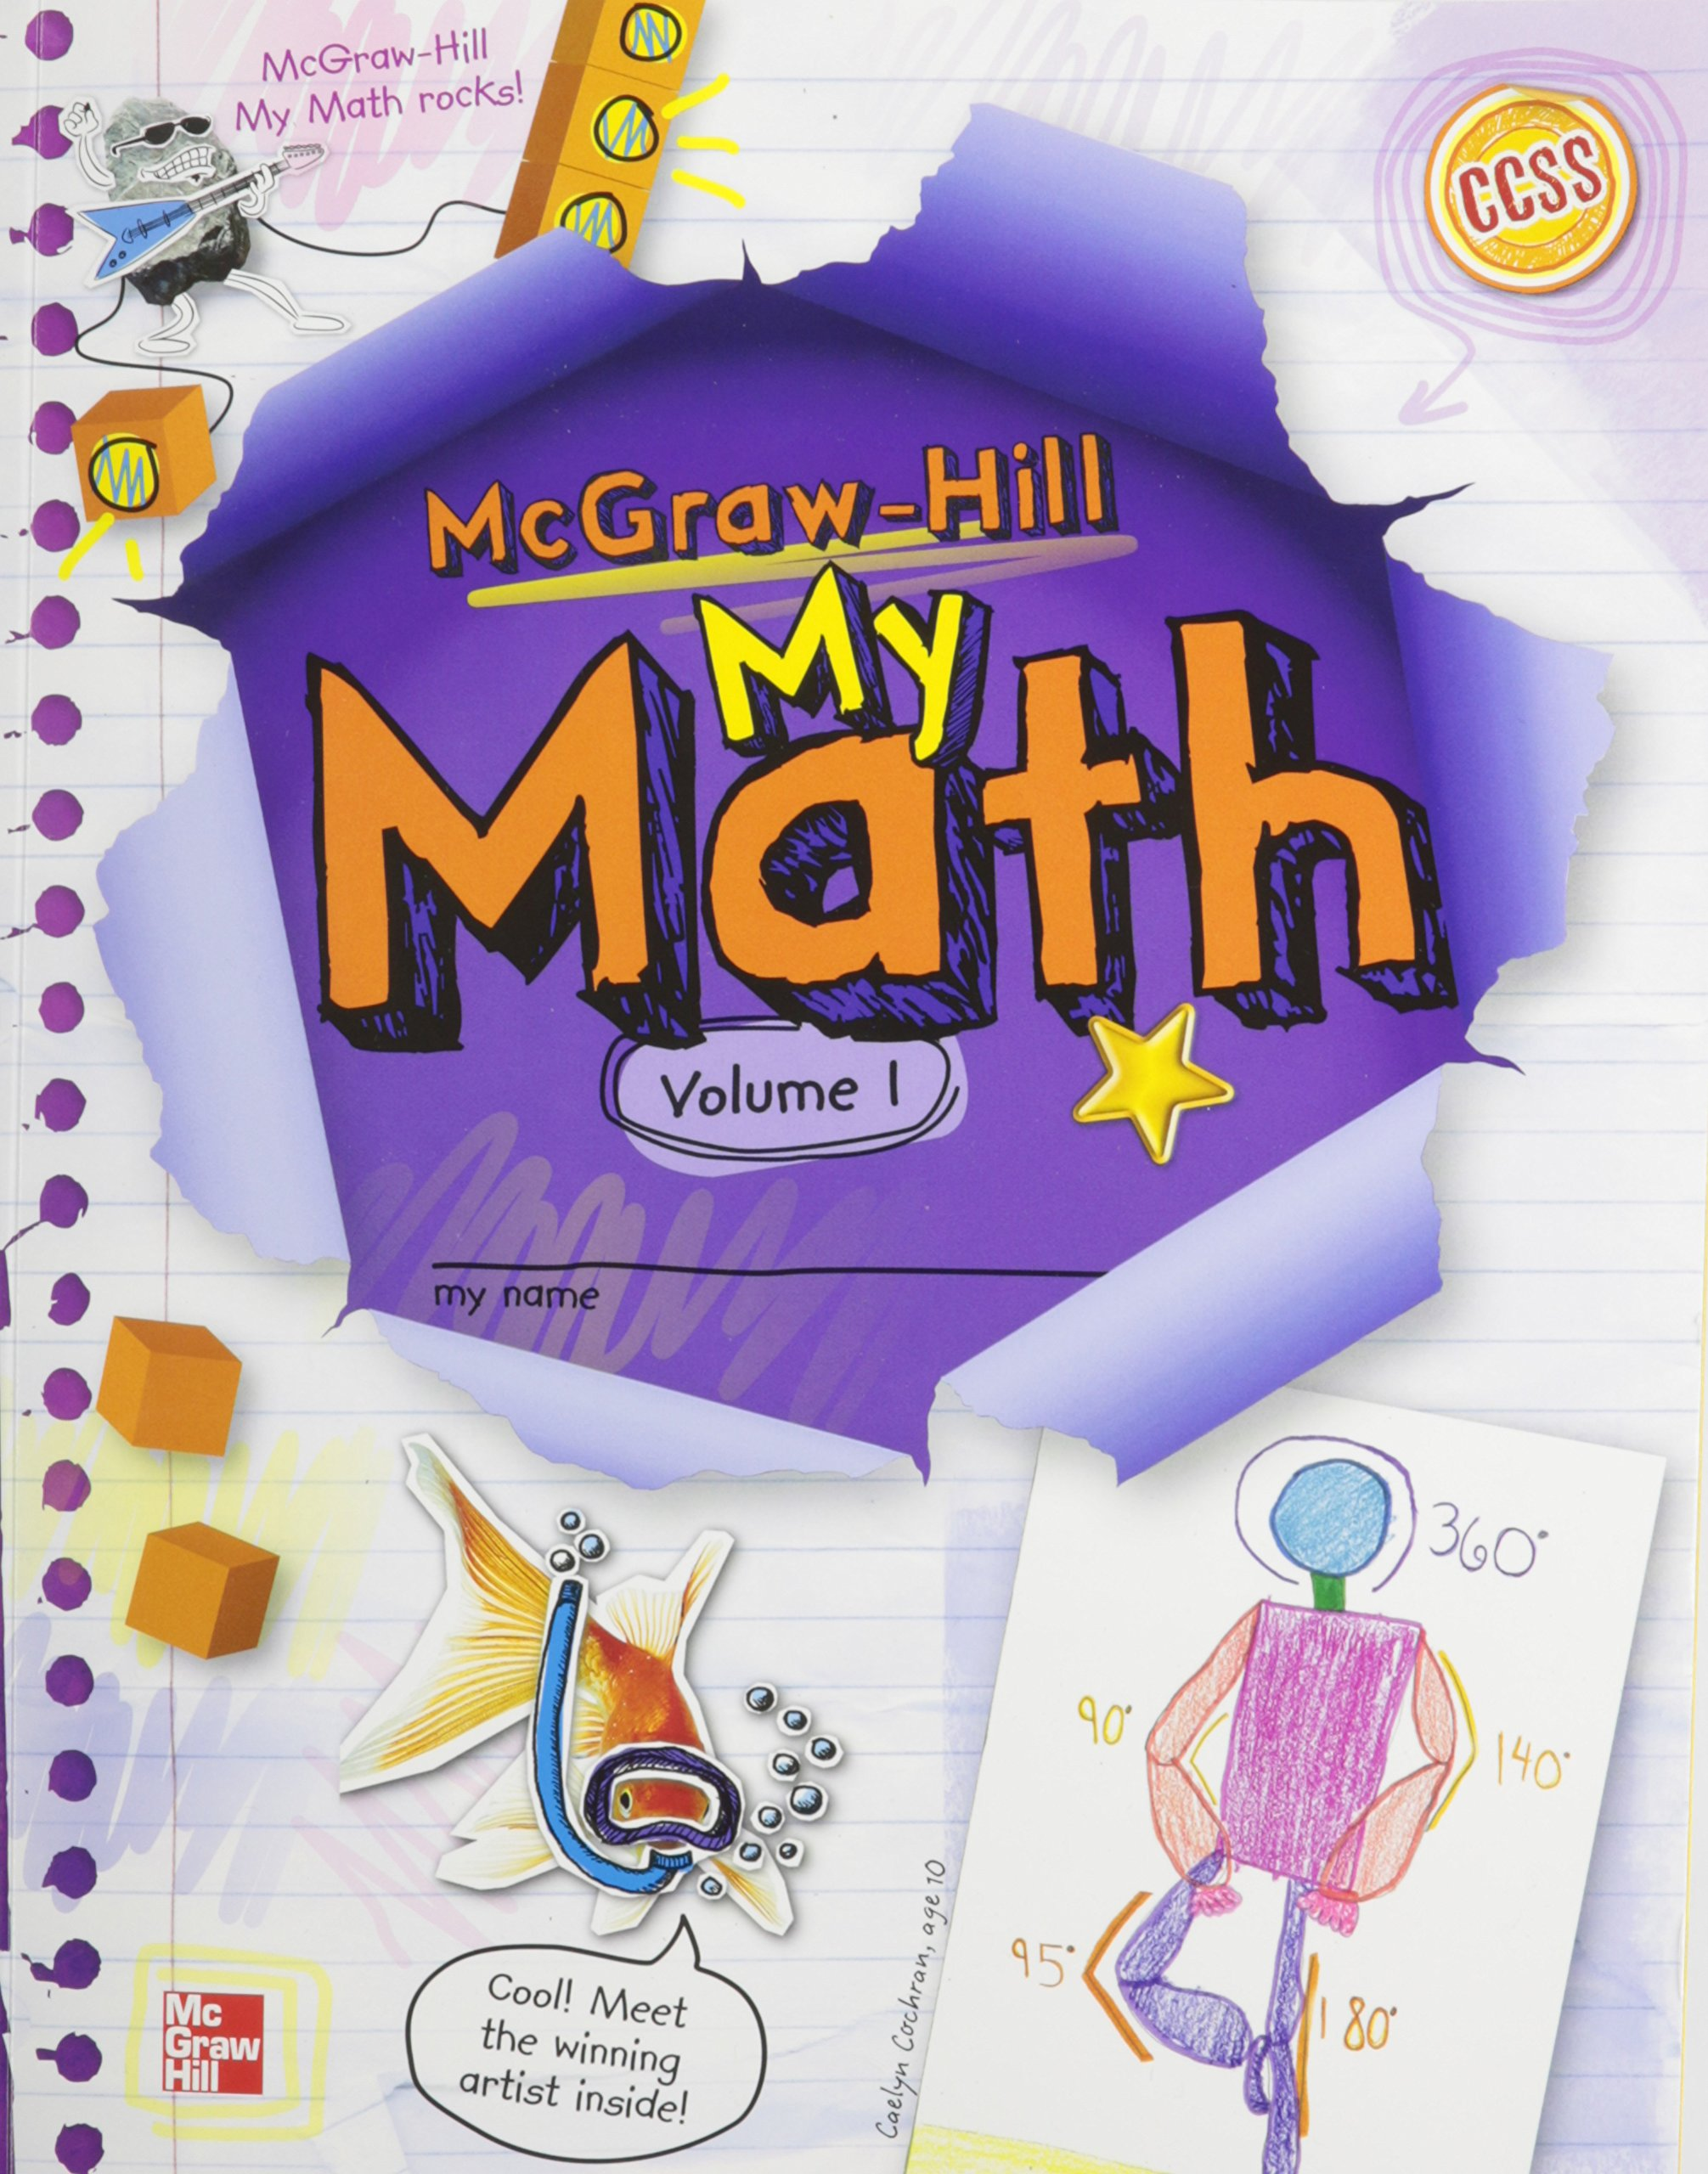 Worksheet The Mcgraw-hill Companies Worksheet Answers my math grade 5 student edition package volumes 1 and 2 inc mcgraw hill companies 9780021170739 amazon com books